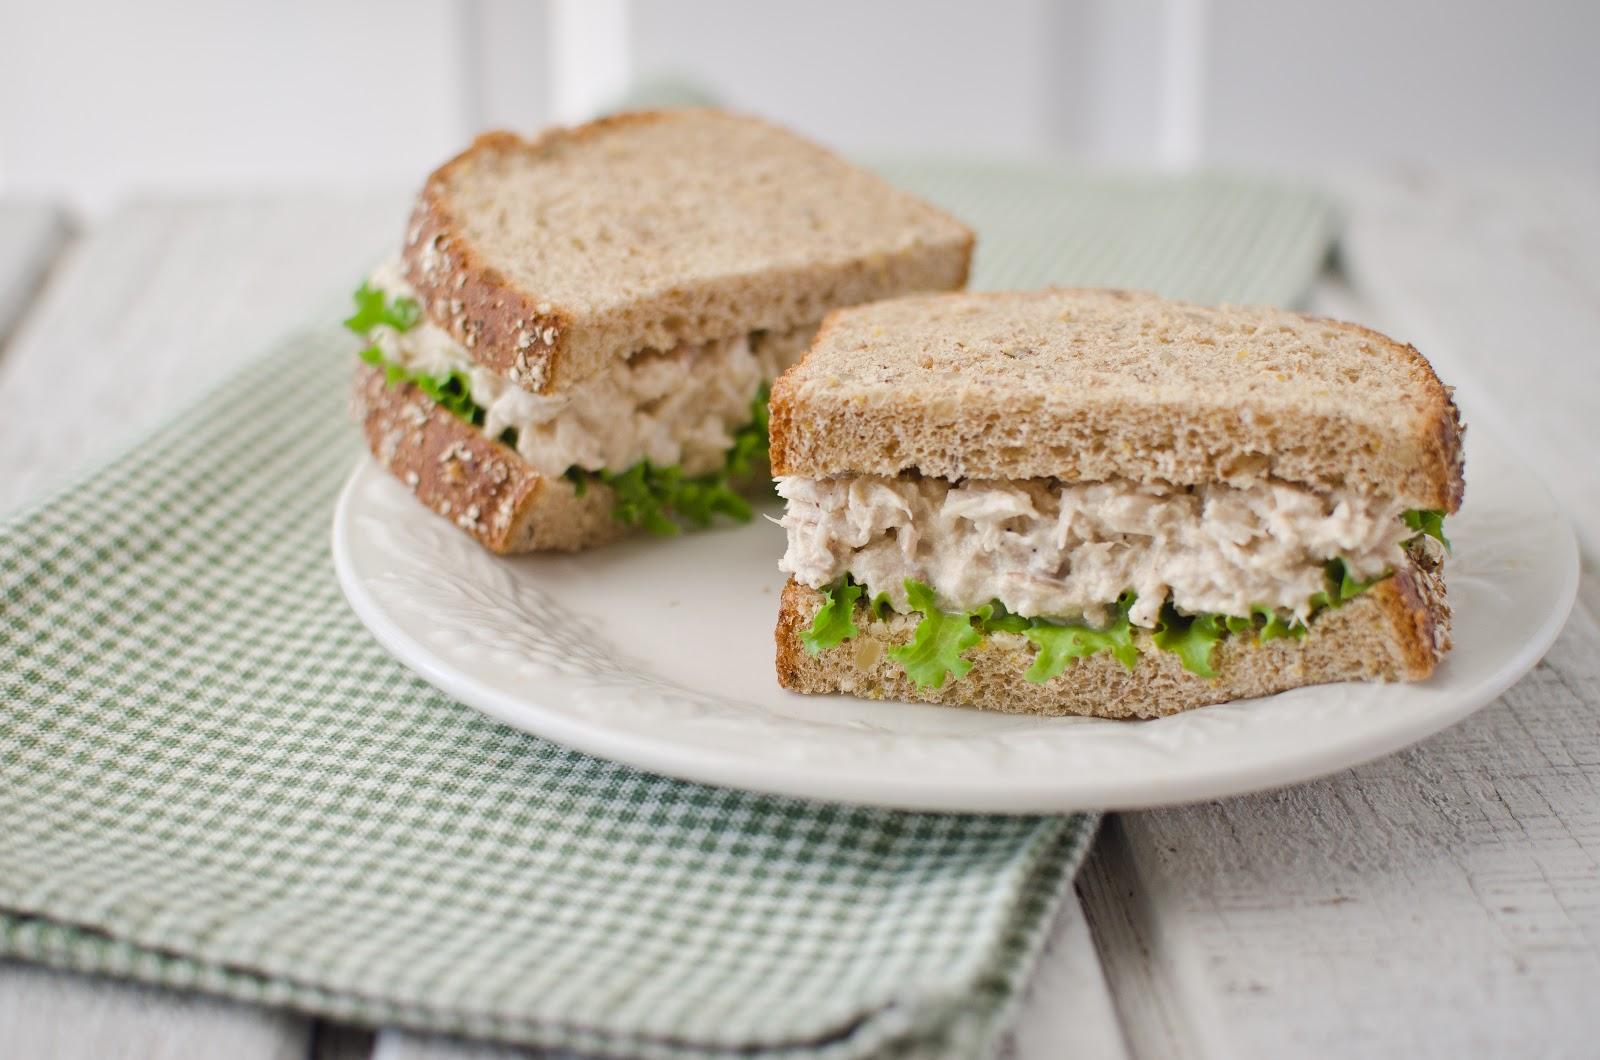 ... and watching them share this tuna salad sandwich for lunch priceless